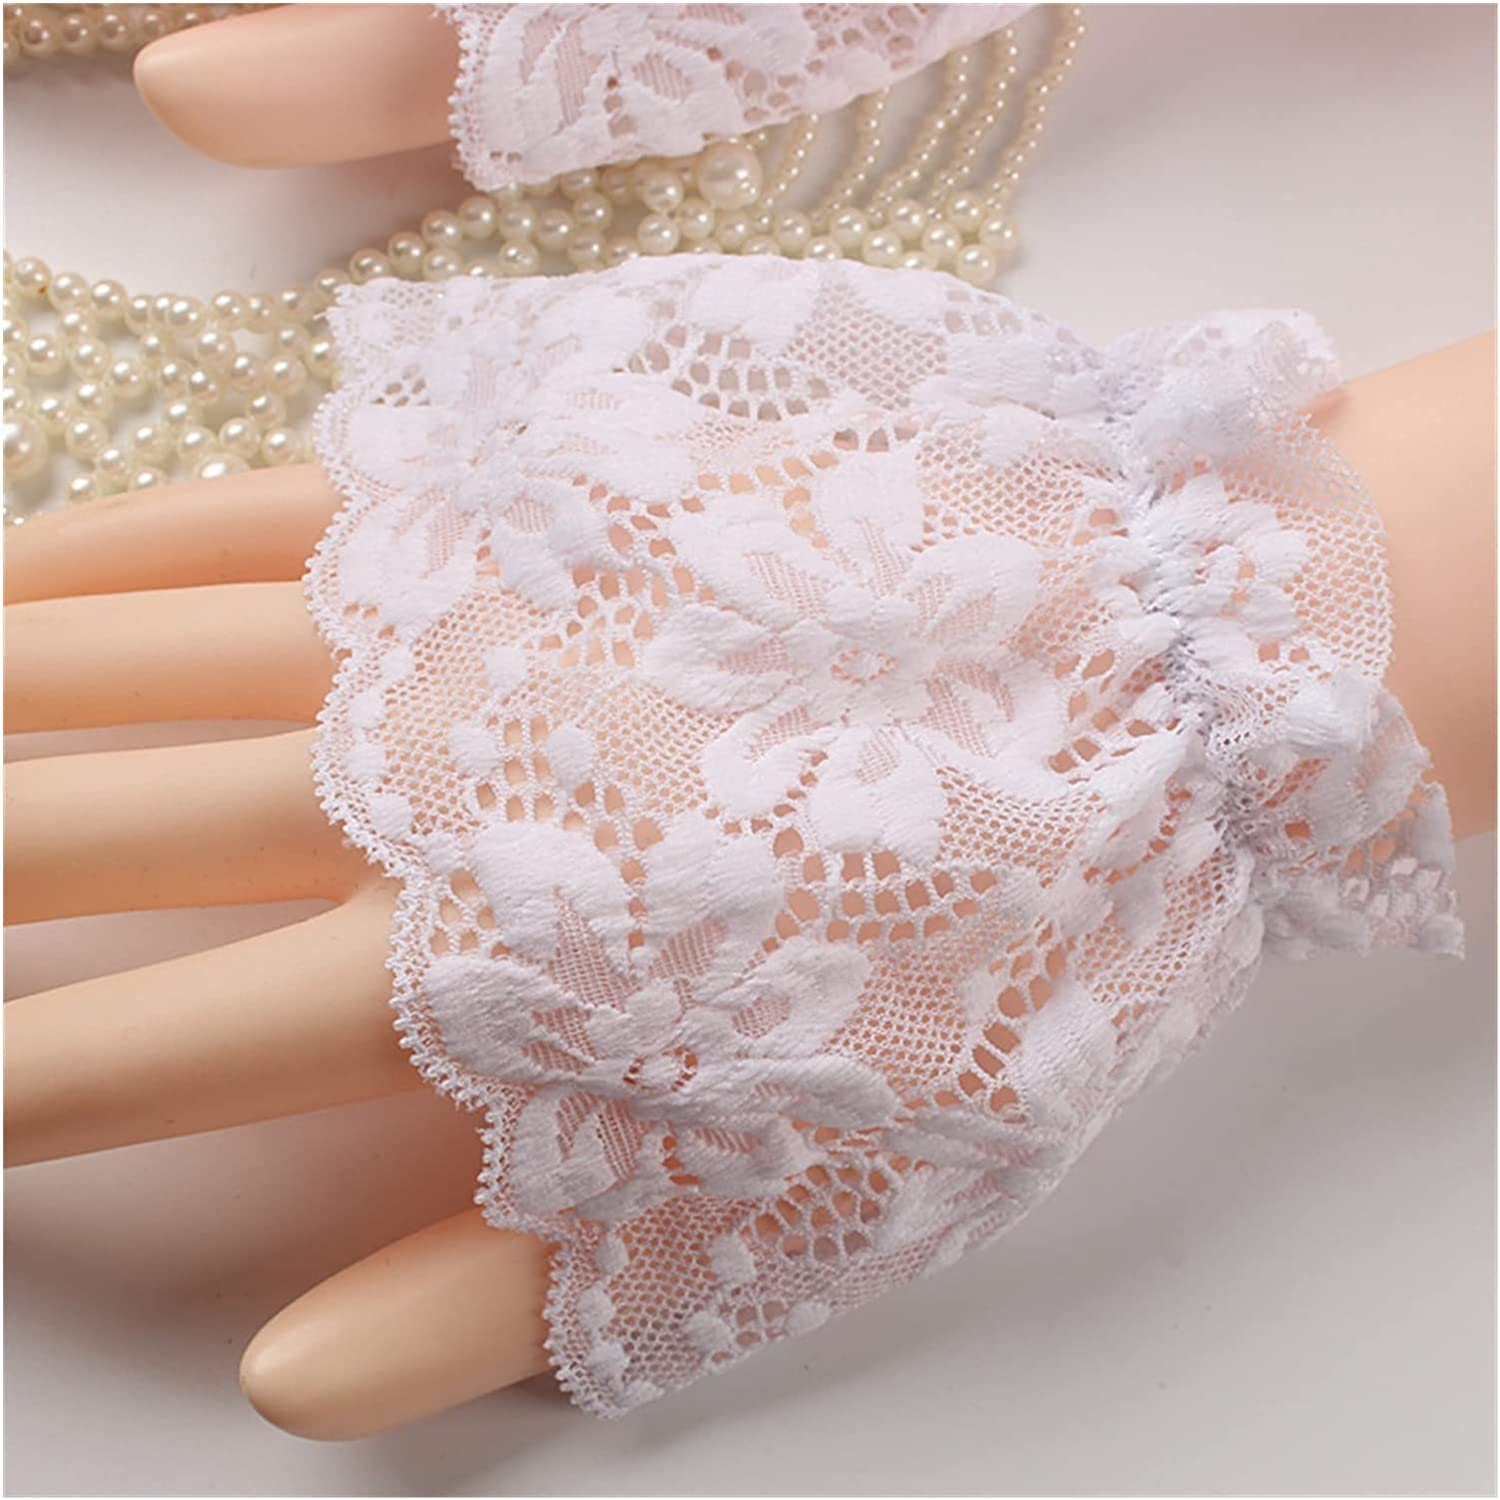 GUYANMAY Lace Gloves Mid-Length Gloves Cotton Arm Cuffs Lace Arm Covers Fashion Solid Black White Fake Sleeves Ladies Knitted Arm Sleeve Fake Cuffs (Color : White 9cm)